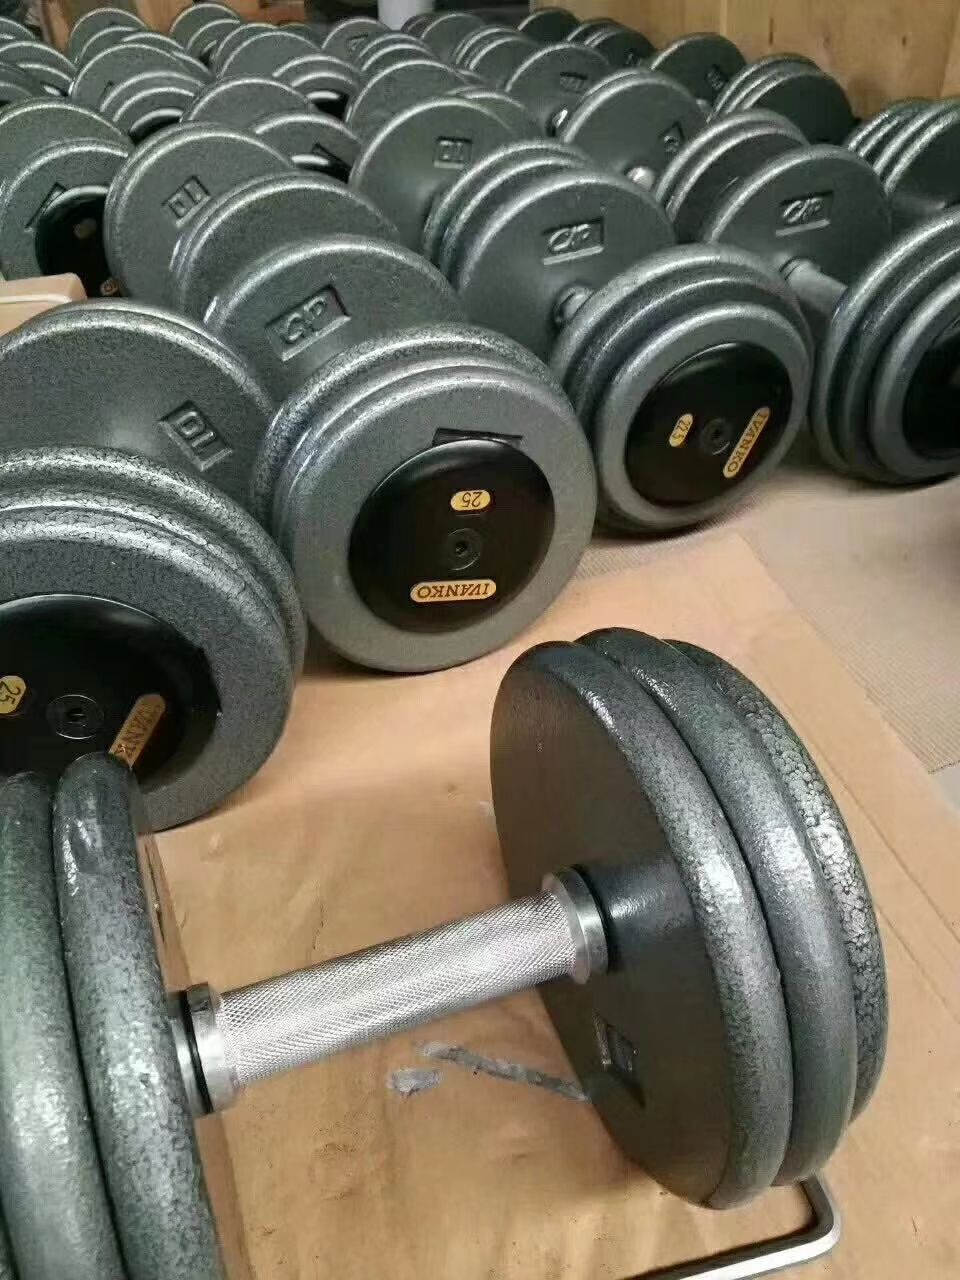 Iron Dumbbell From 2 5kg To 100kg In 2 5kg Increments Crossfit Equipment Dumbbell Equipment